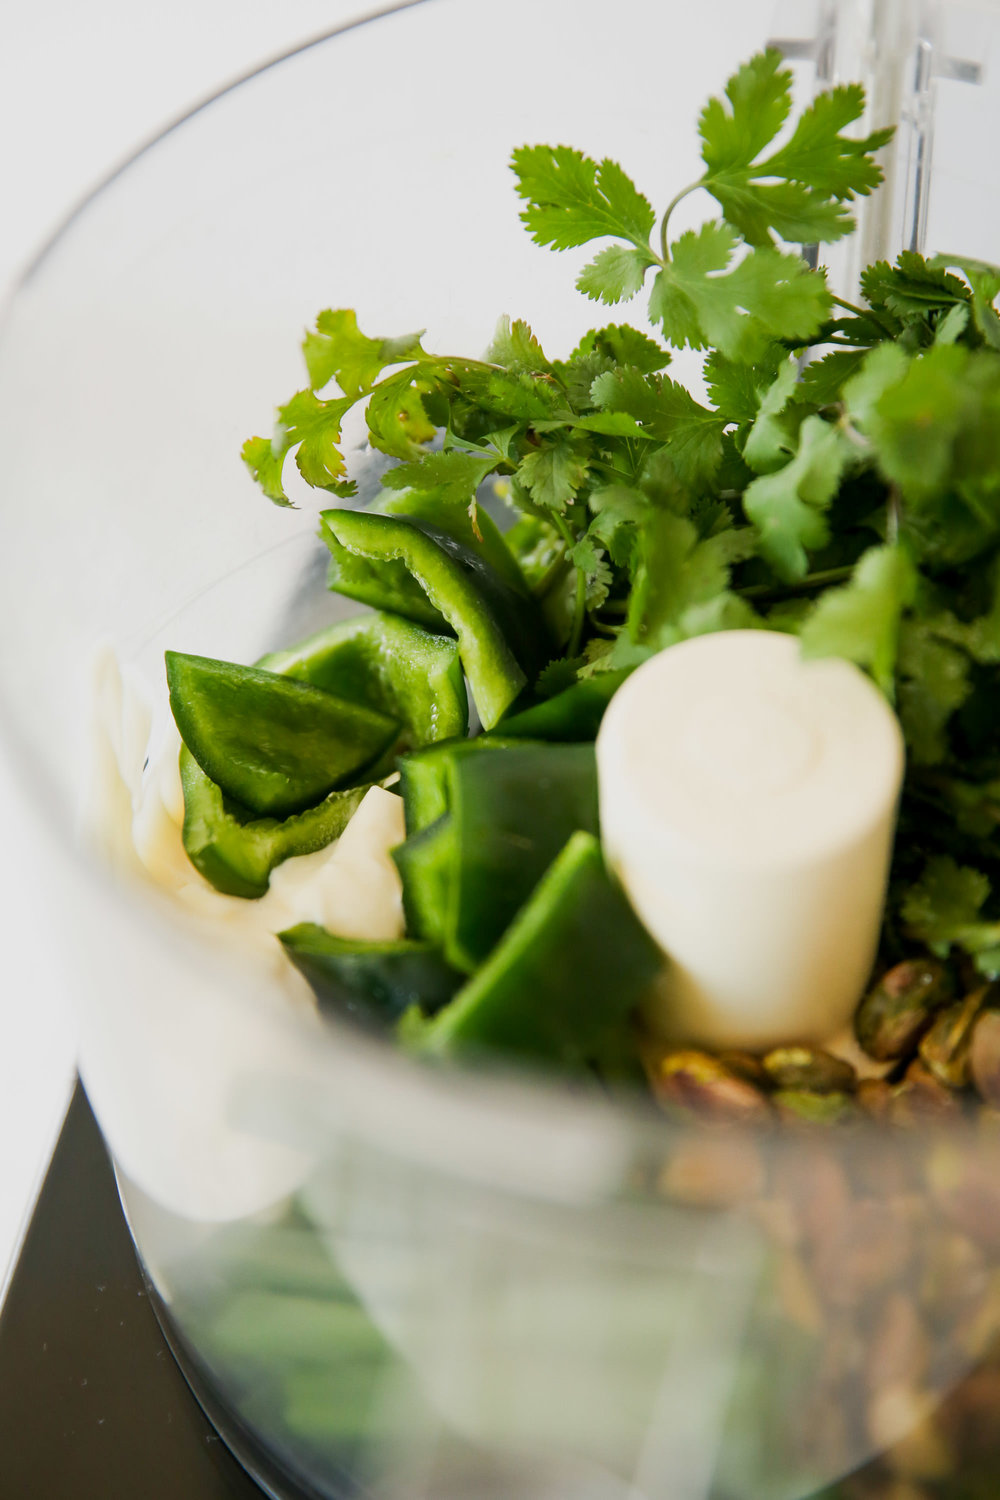 Jalepeno lending spice to green goddess dressing